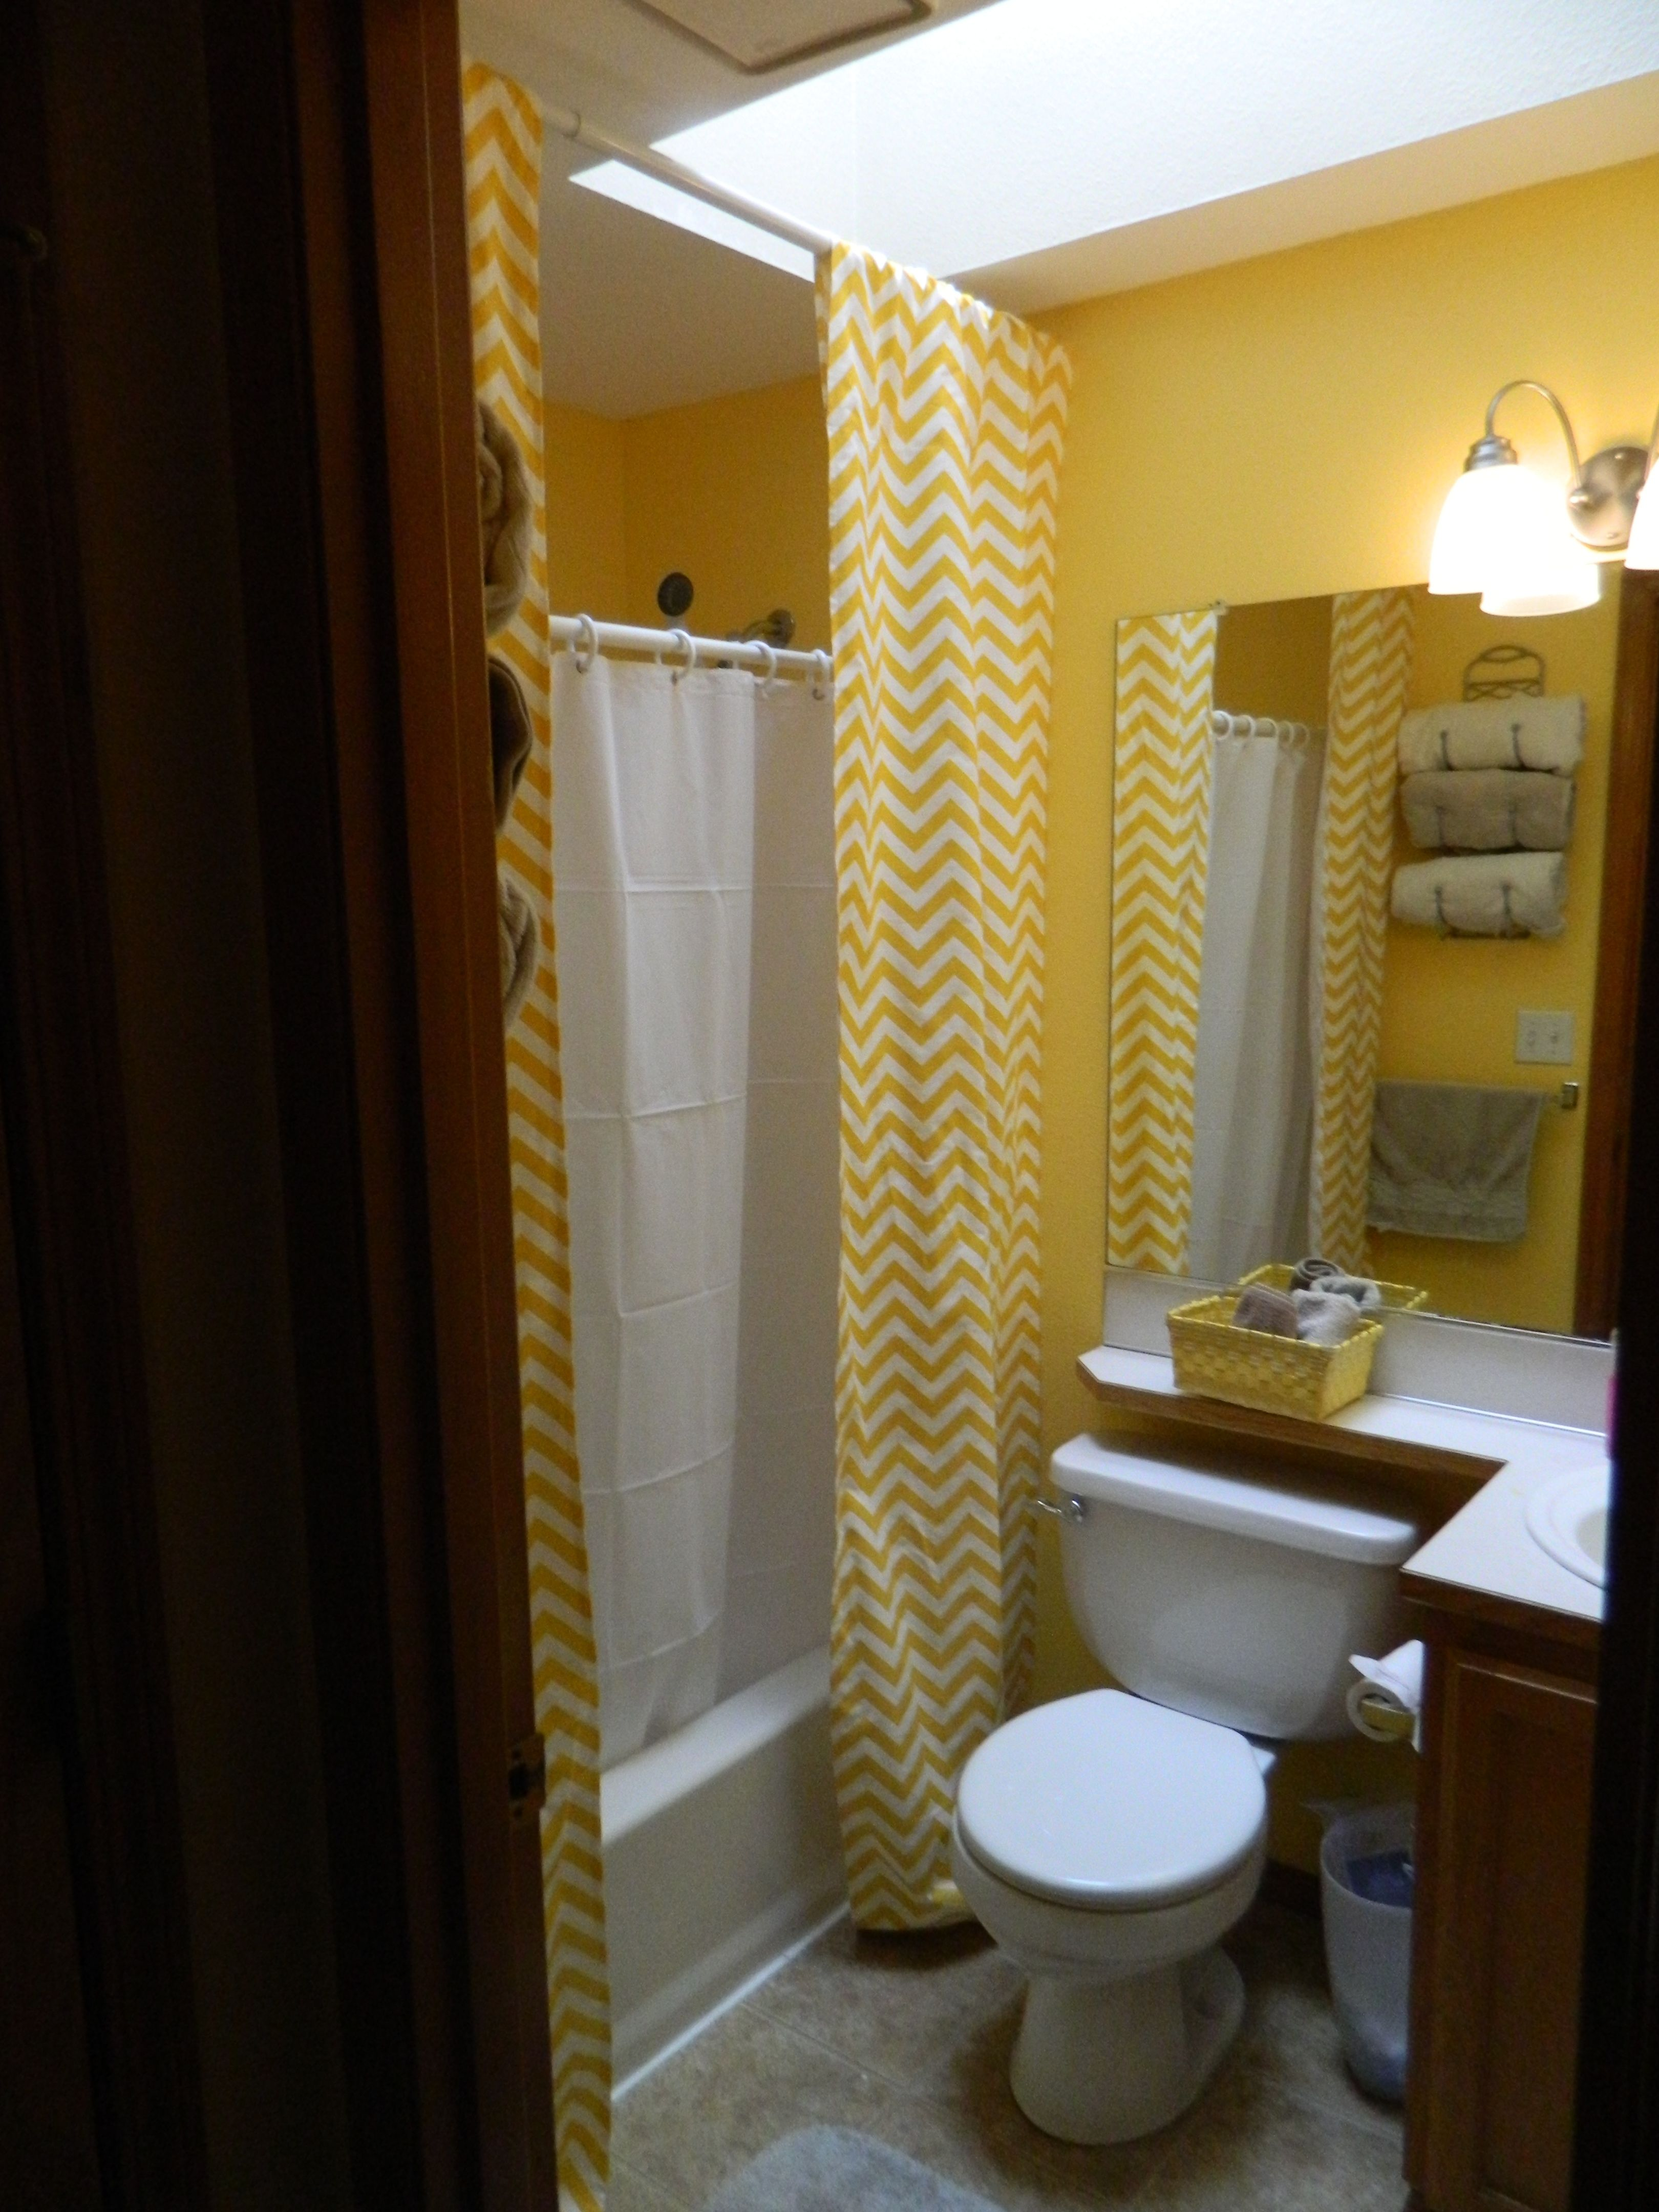 Extra Long Side Shower Curtain Panels Makes This Small Bathroom